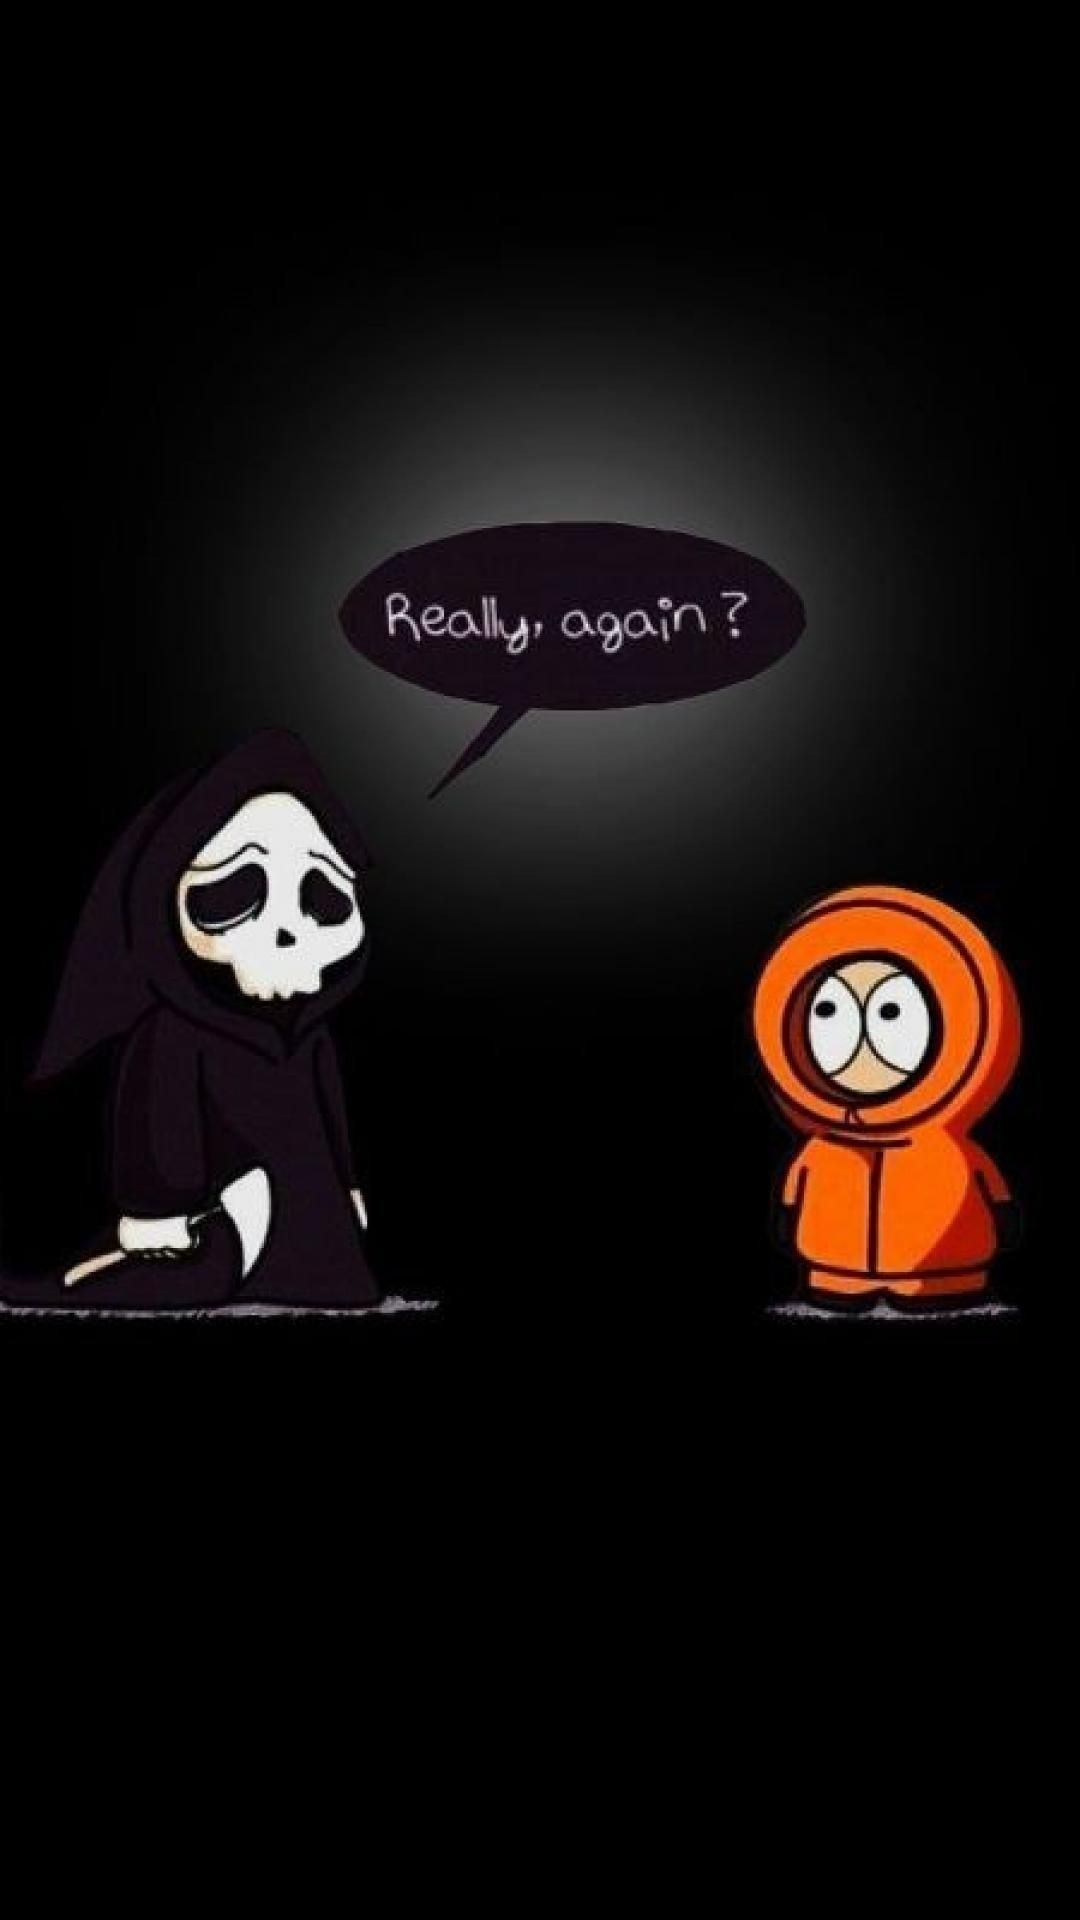 1080x1920 Download south park funny kenny mccormick clean 1080 x 1920 ...